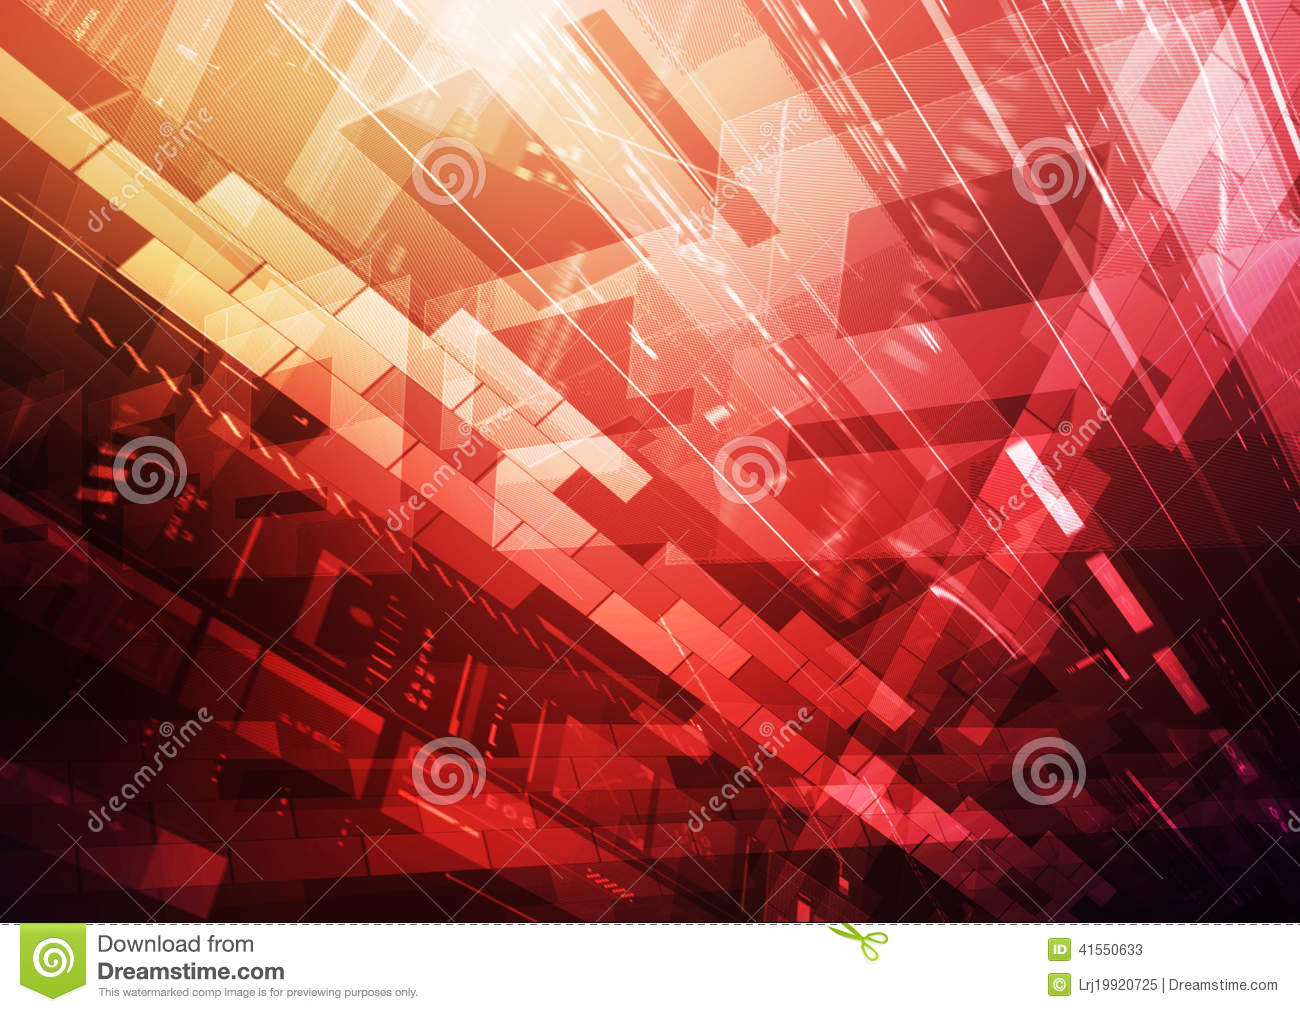 Information Technology red stock illustration. Image of ...